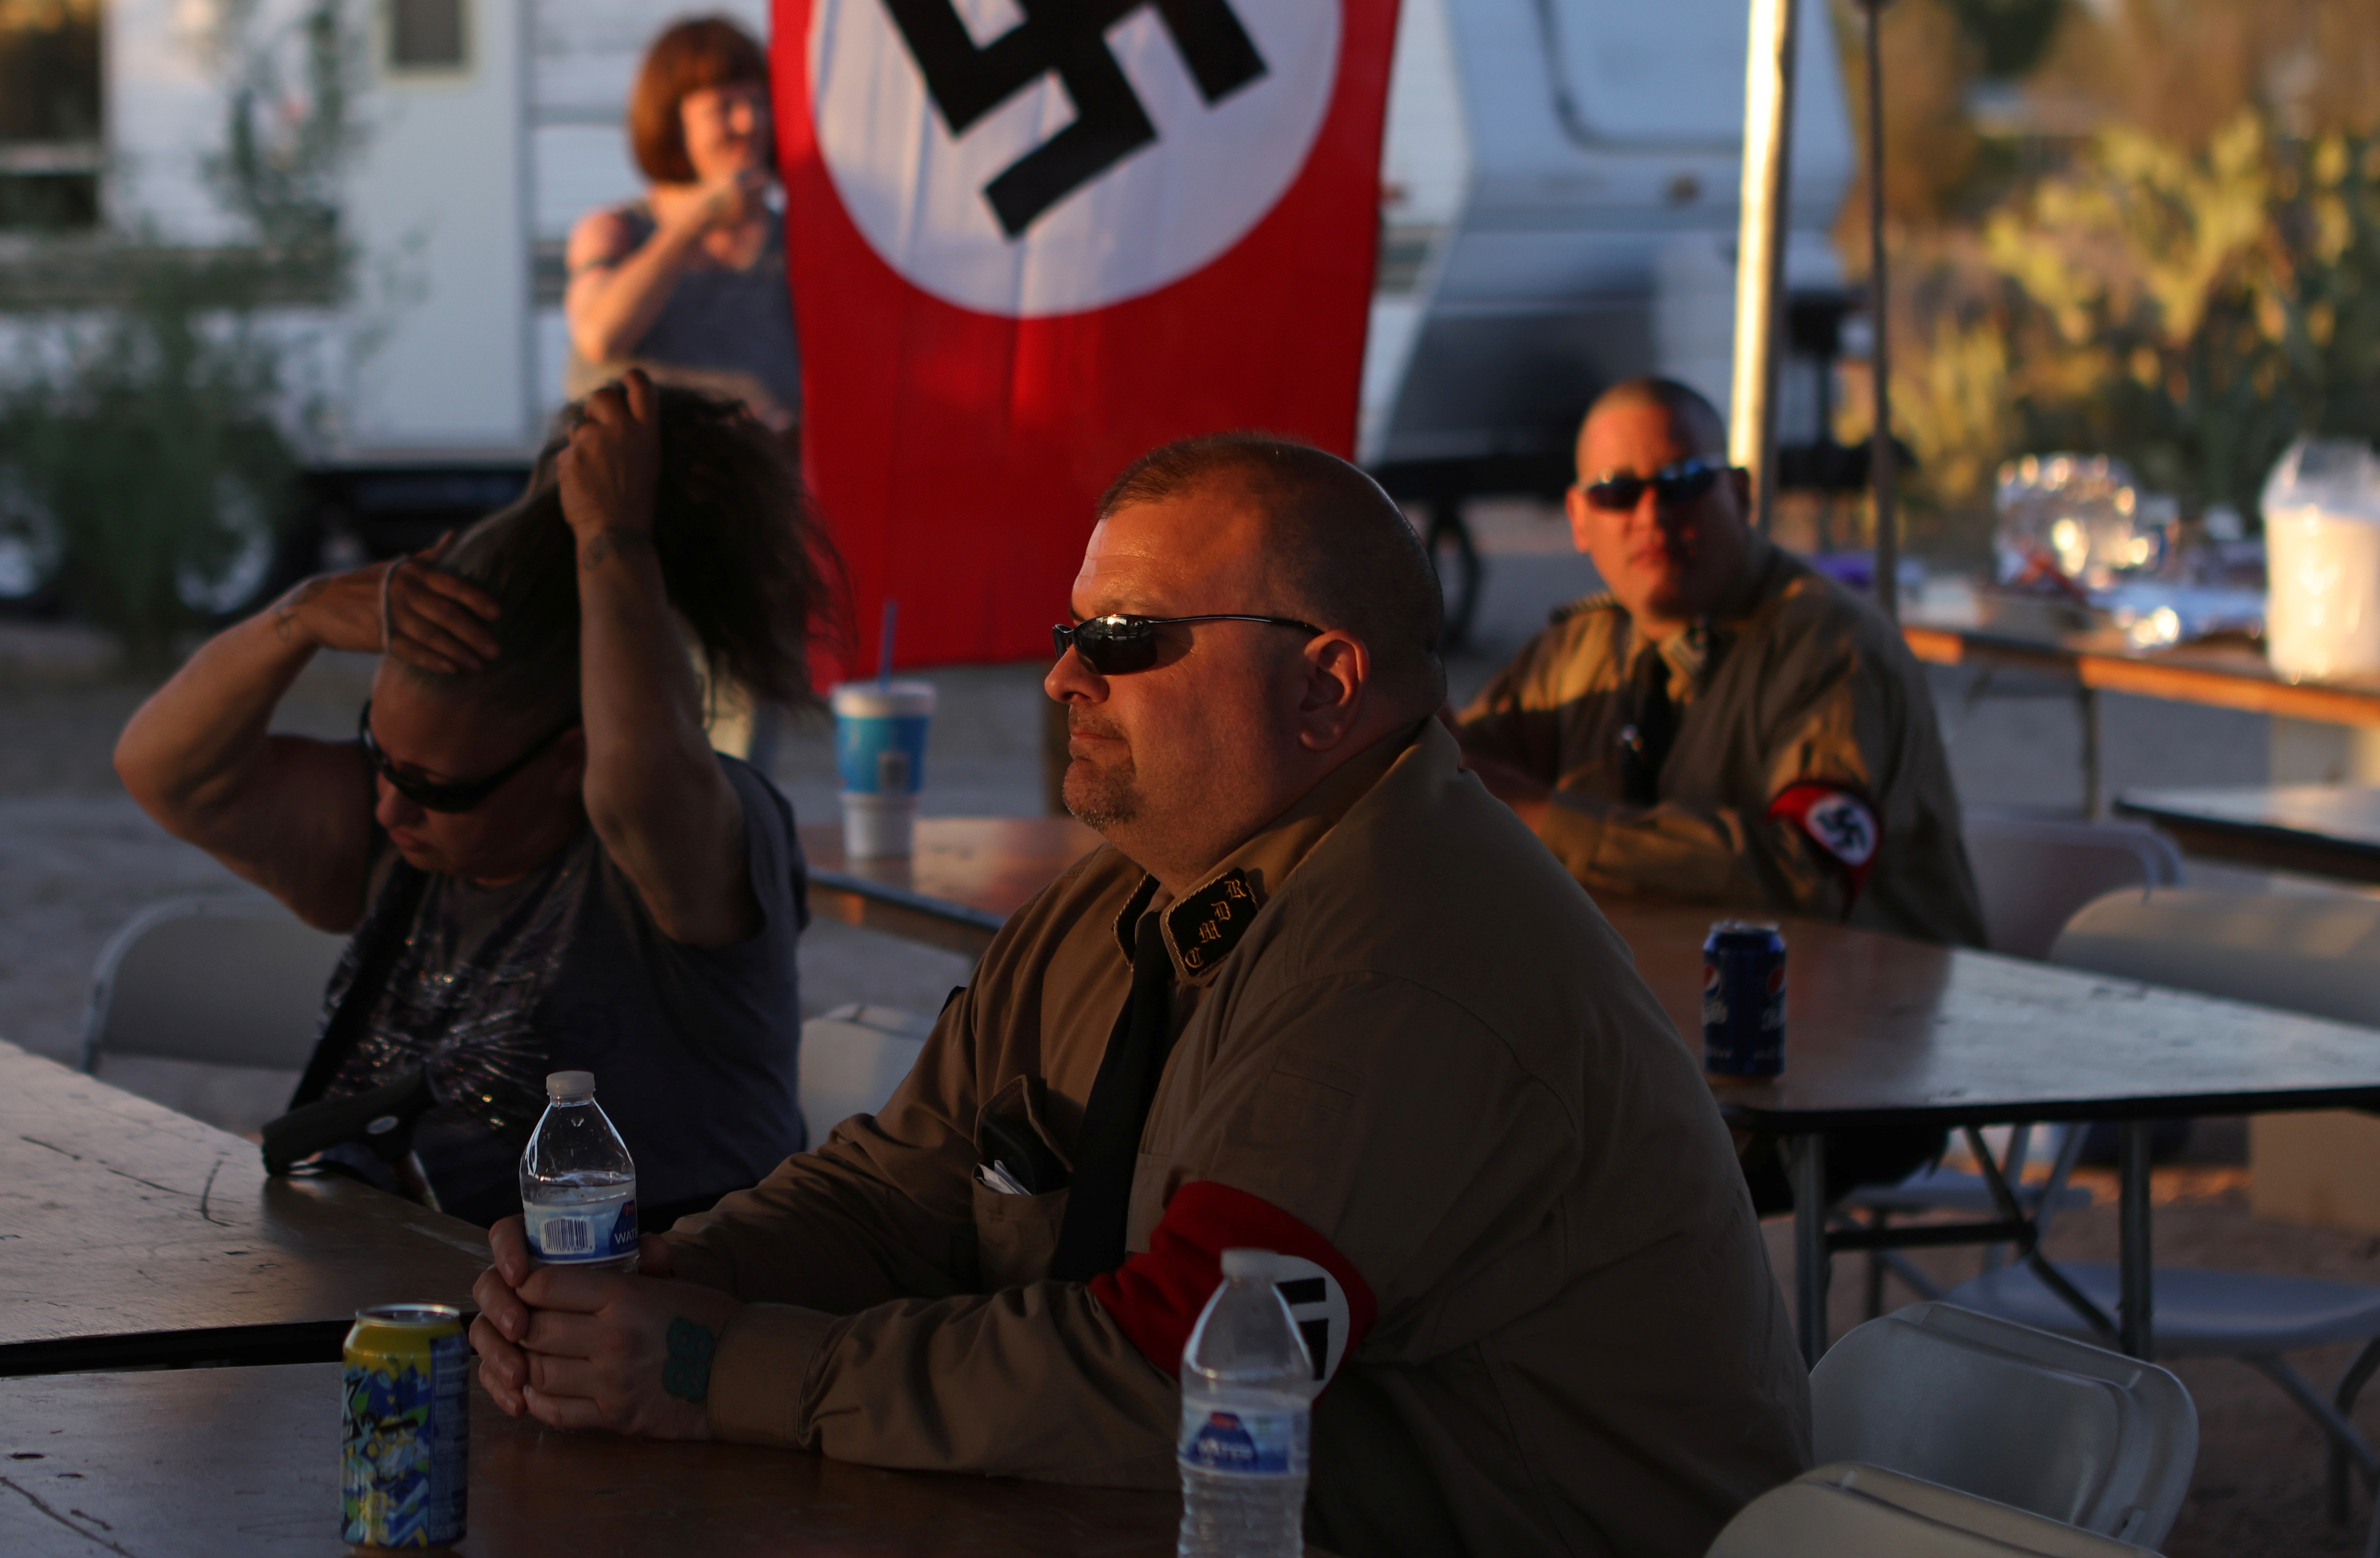 Burt Colucci of the white nationalist group National Socialist Movement attends a rally in Maricopa, Arizona, U.S., April 16, 2021. REUTERS/Jim Urquhart